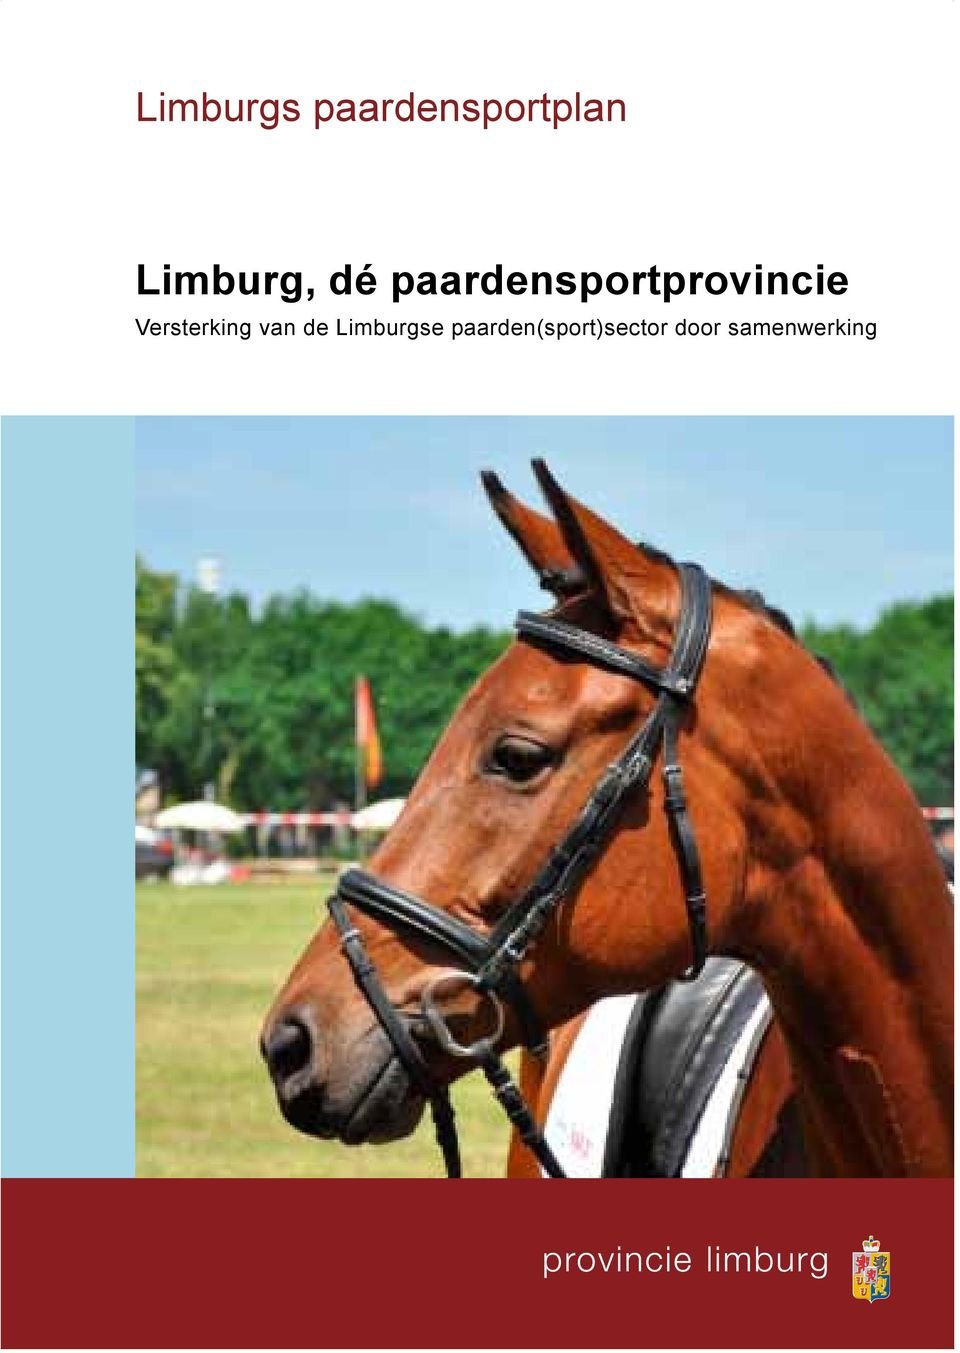 paardensportprovincie